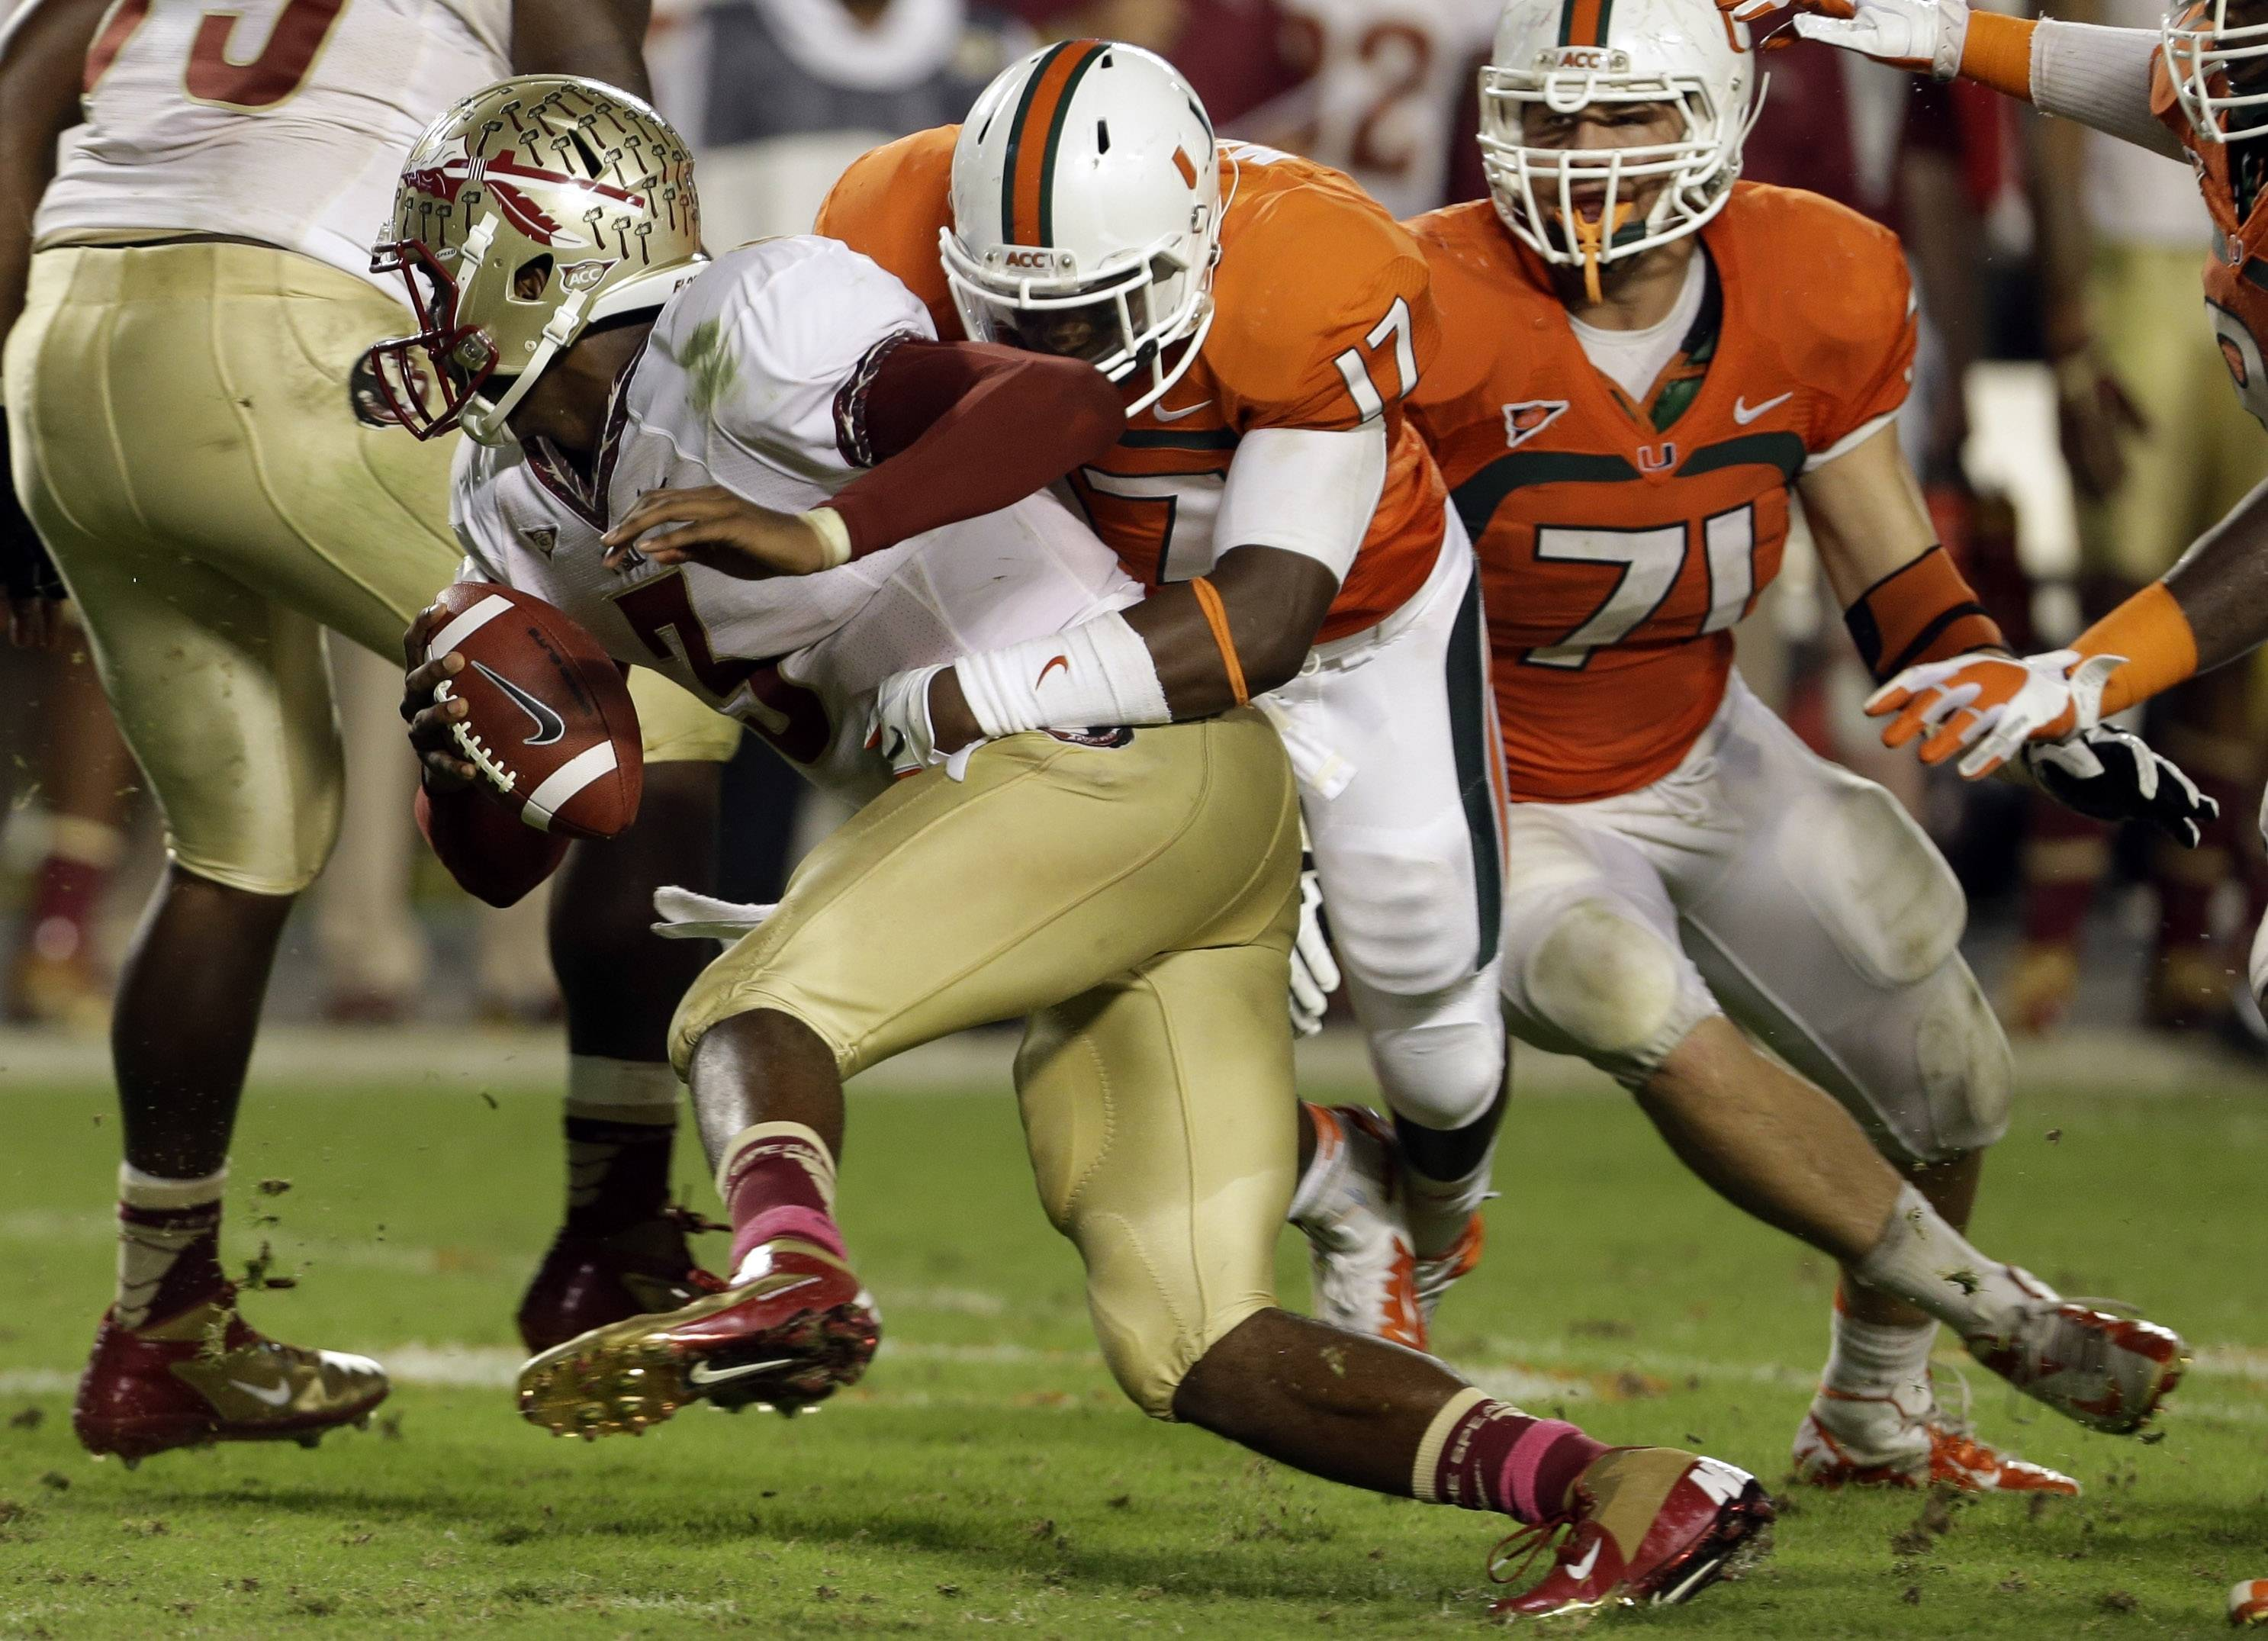 Florida State quarterback EJ Manuel, front left, is tackled by Miami defensive lineman Tyriq McCord (17) during the second half of an NCAA college football game on Saturday, Oct. 20, 2012, in Miami. (AP Photo/Lynne Sladky)